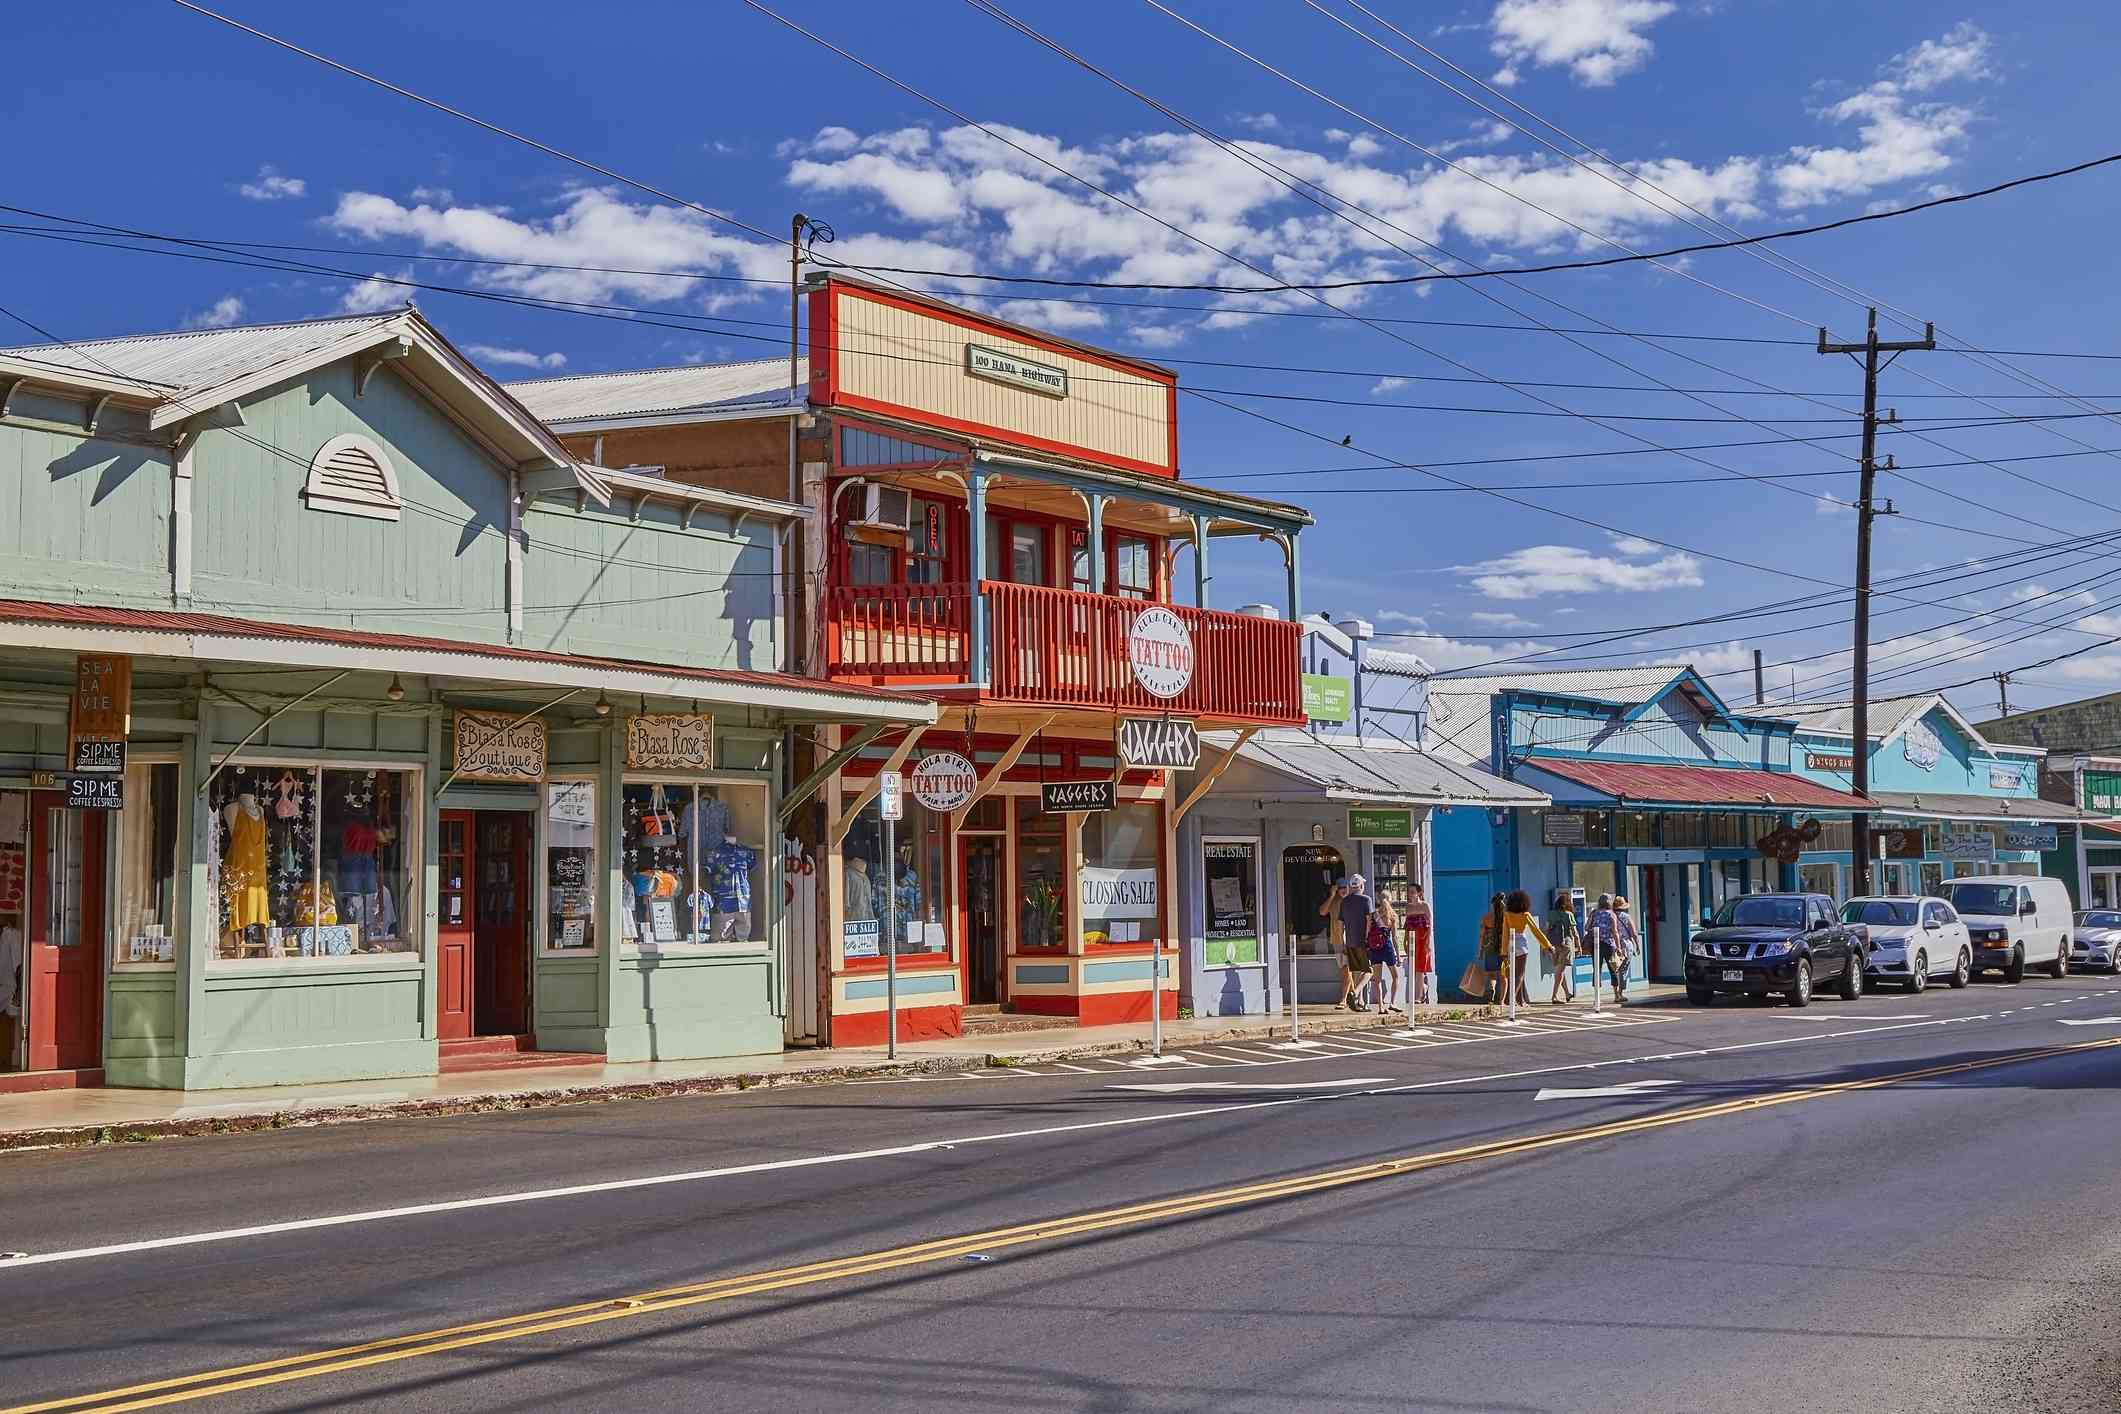 Picturesque old fashioned Shops and buildings of the historic town of Paia,Maui,Hawaii,